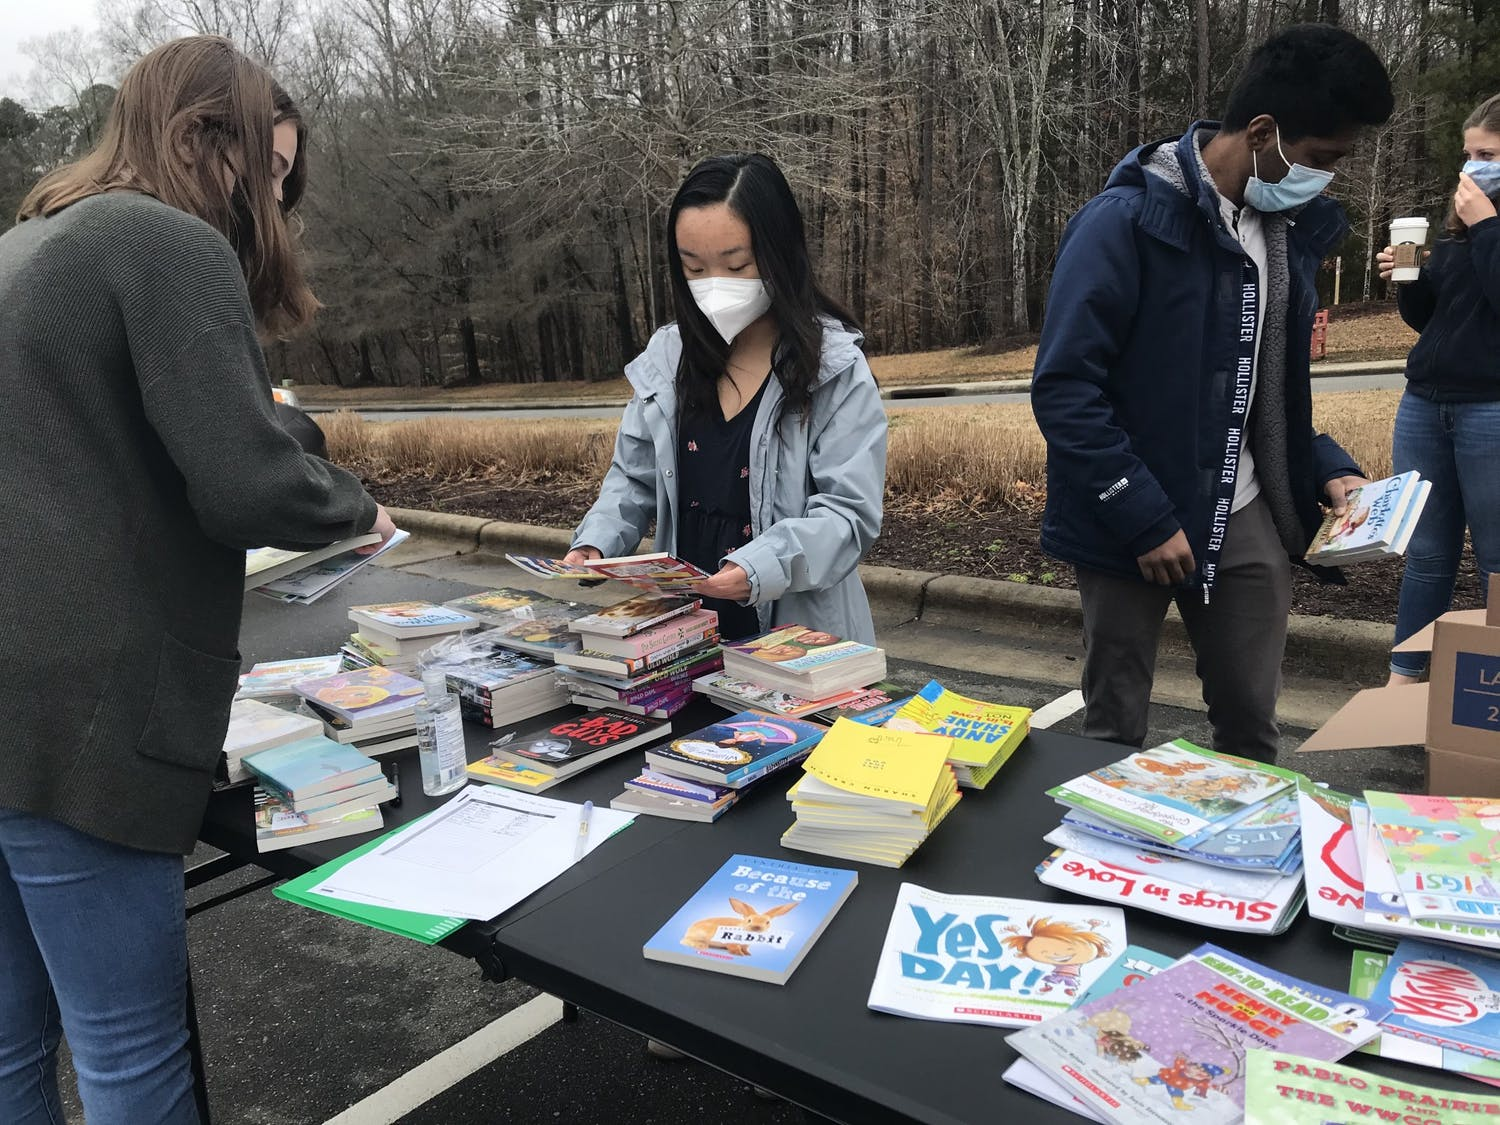 UNC's Future Business Leaders of America club holds a book drive for local elementary students outside of Chapel Hill Public Library on Saturday, Feb. 27, 2021.